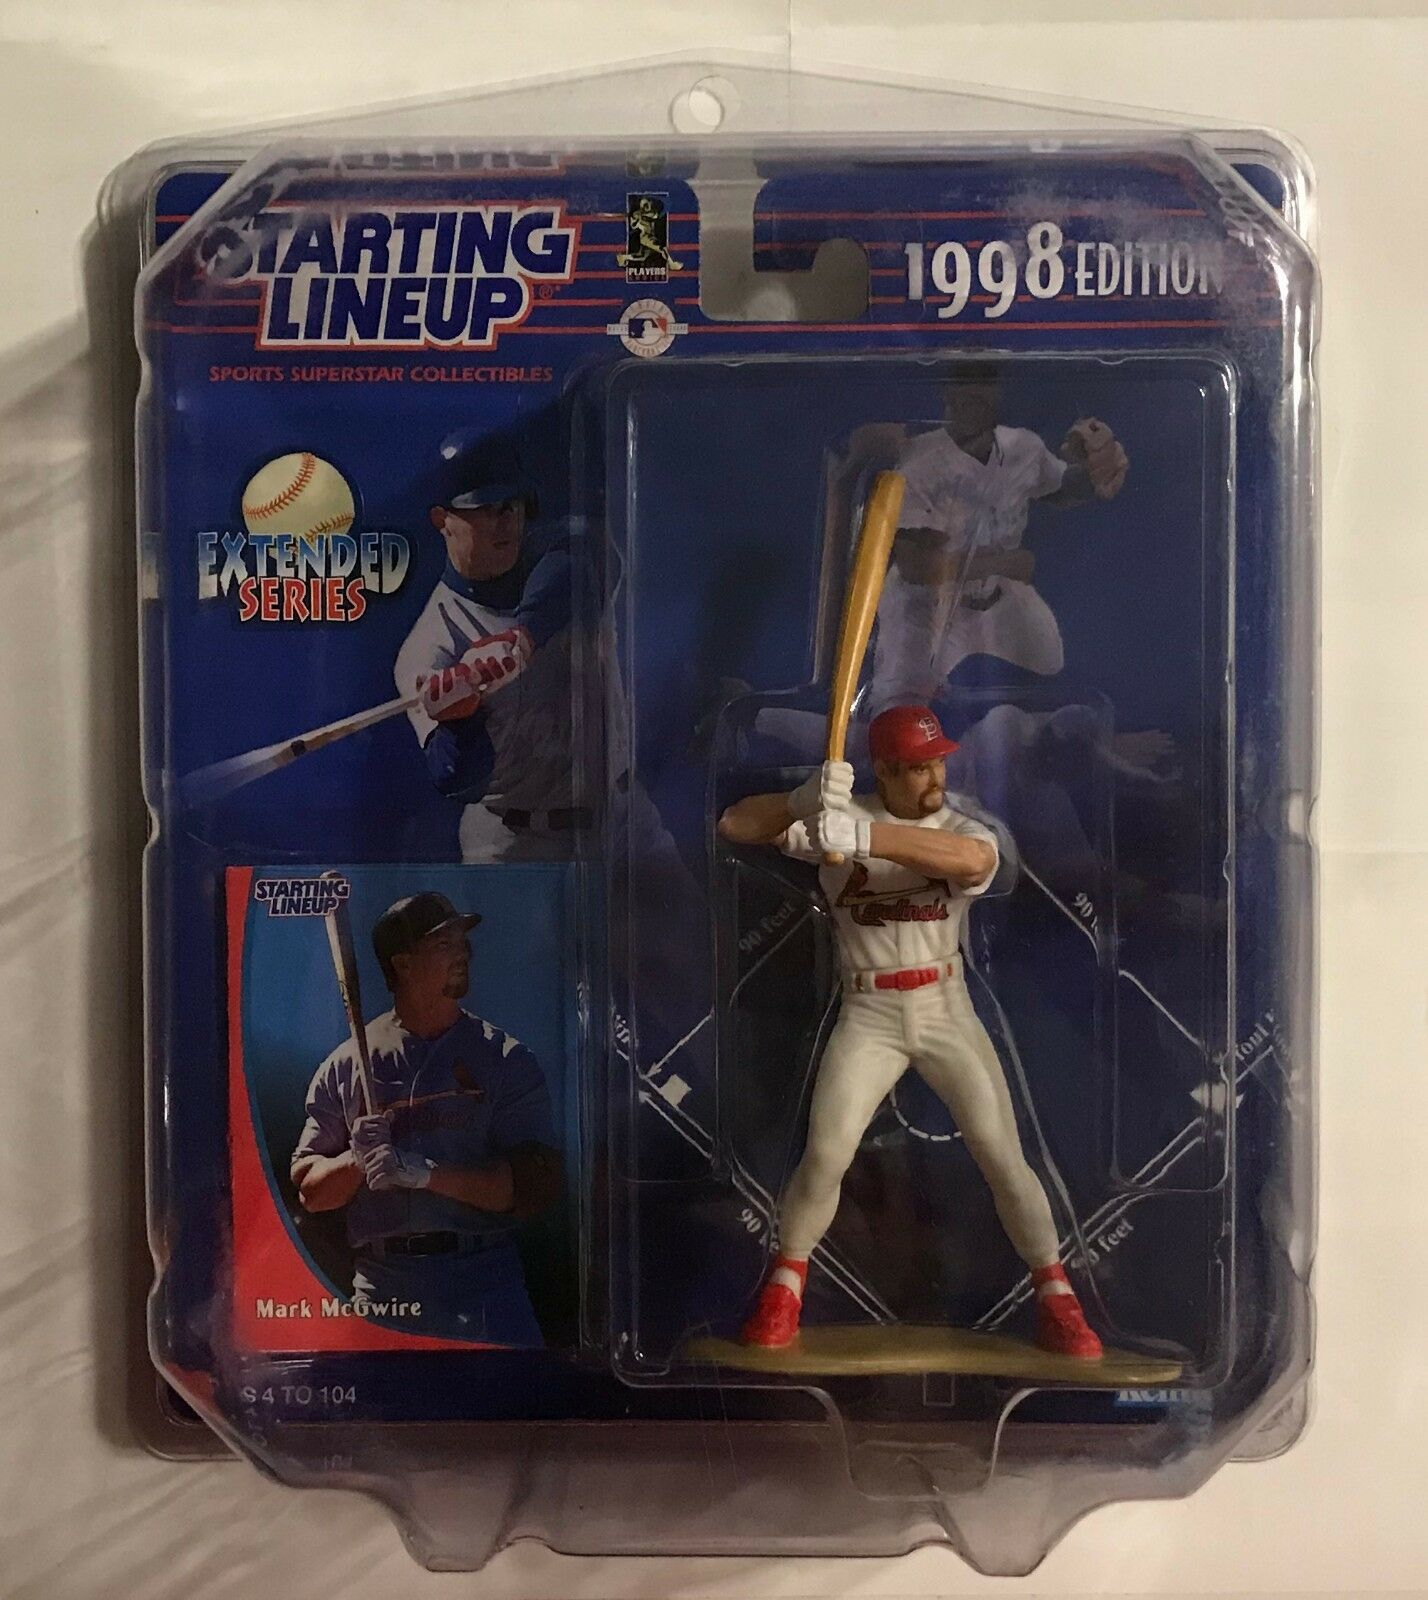 1998 STARTING LINEUP - MARK MCGWIRE - CARDINALS - ACTION FIGURE IN CASE